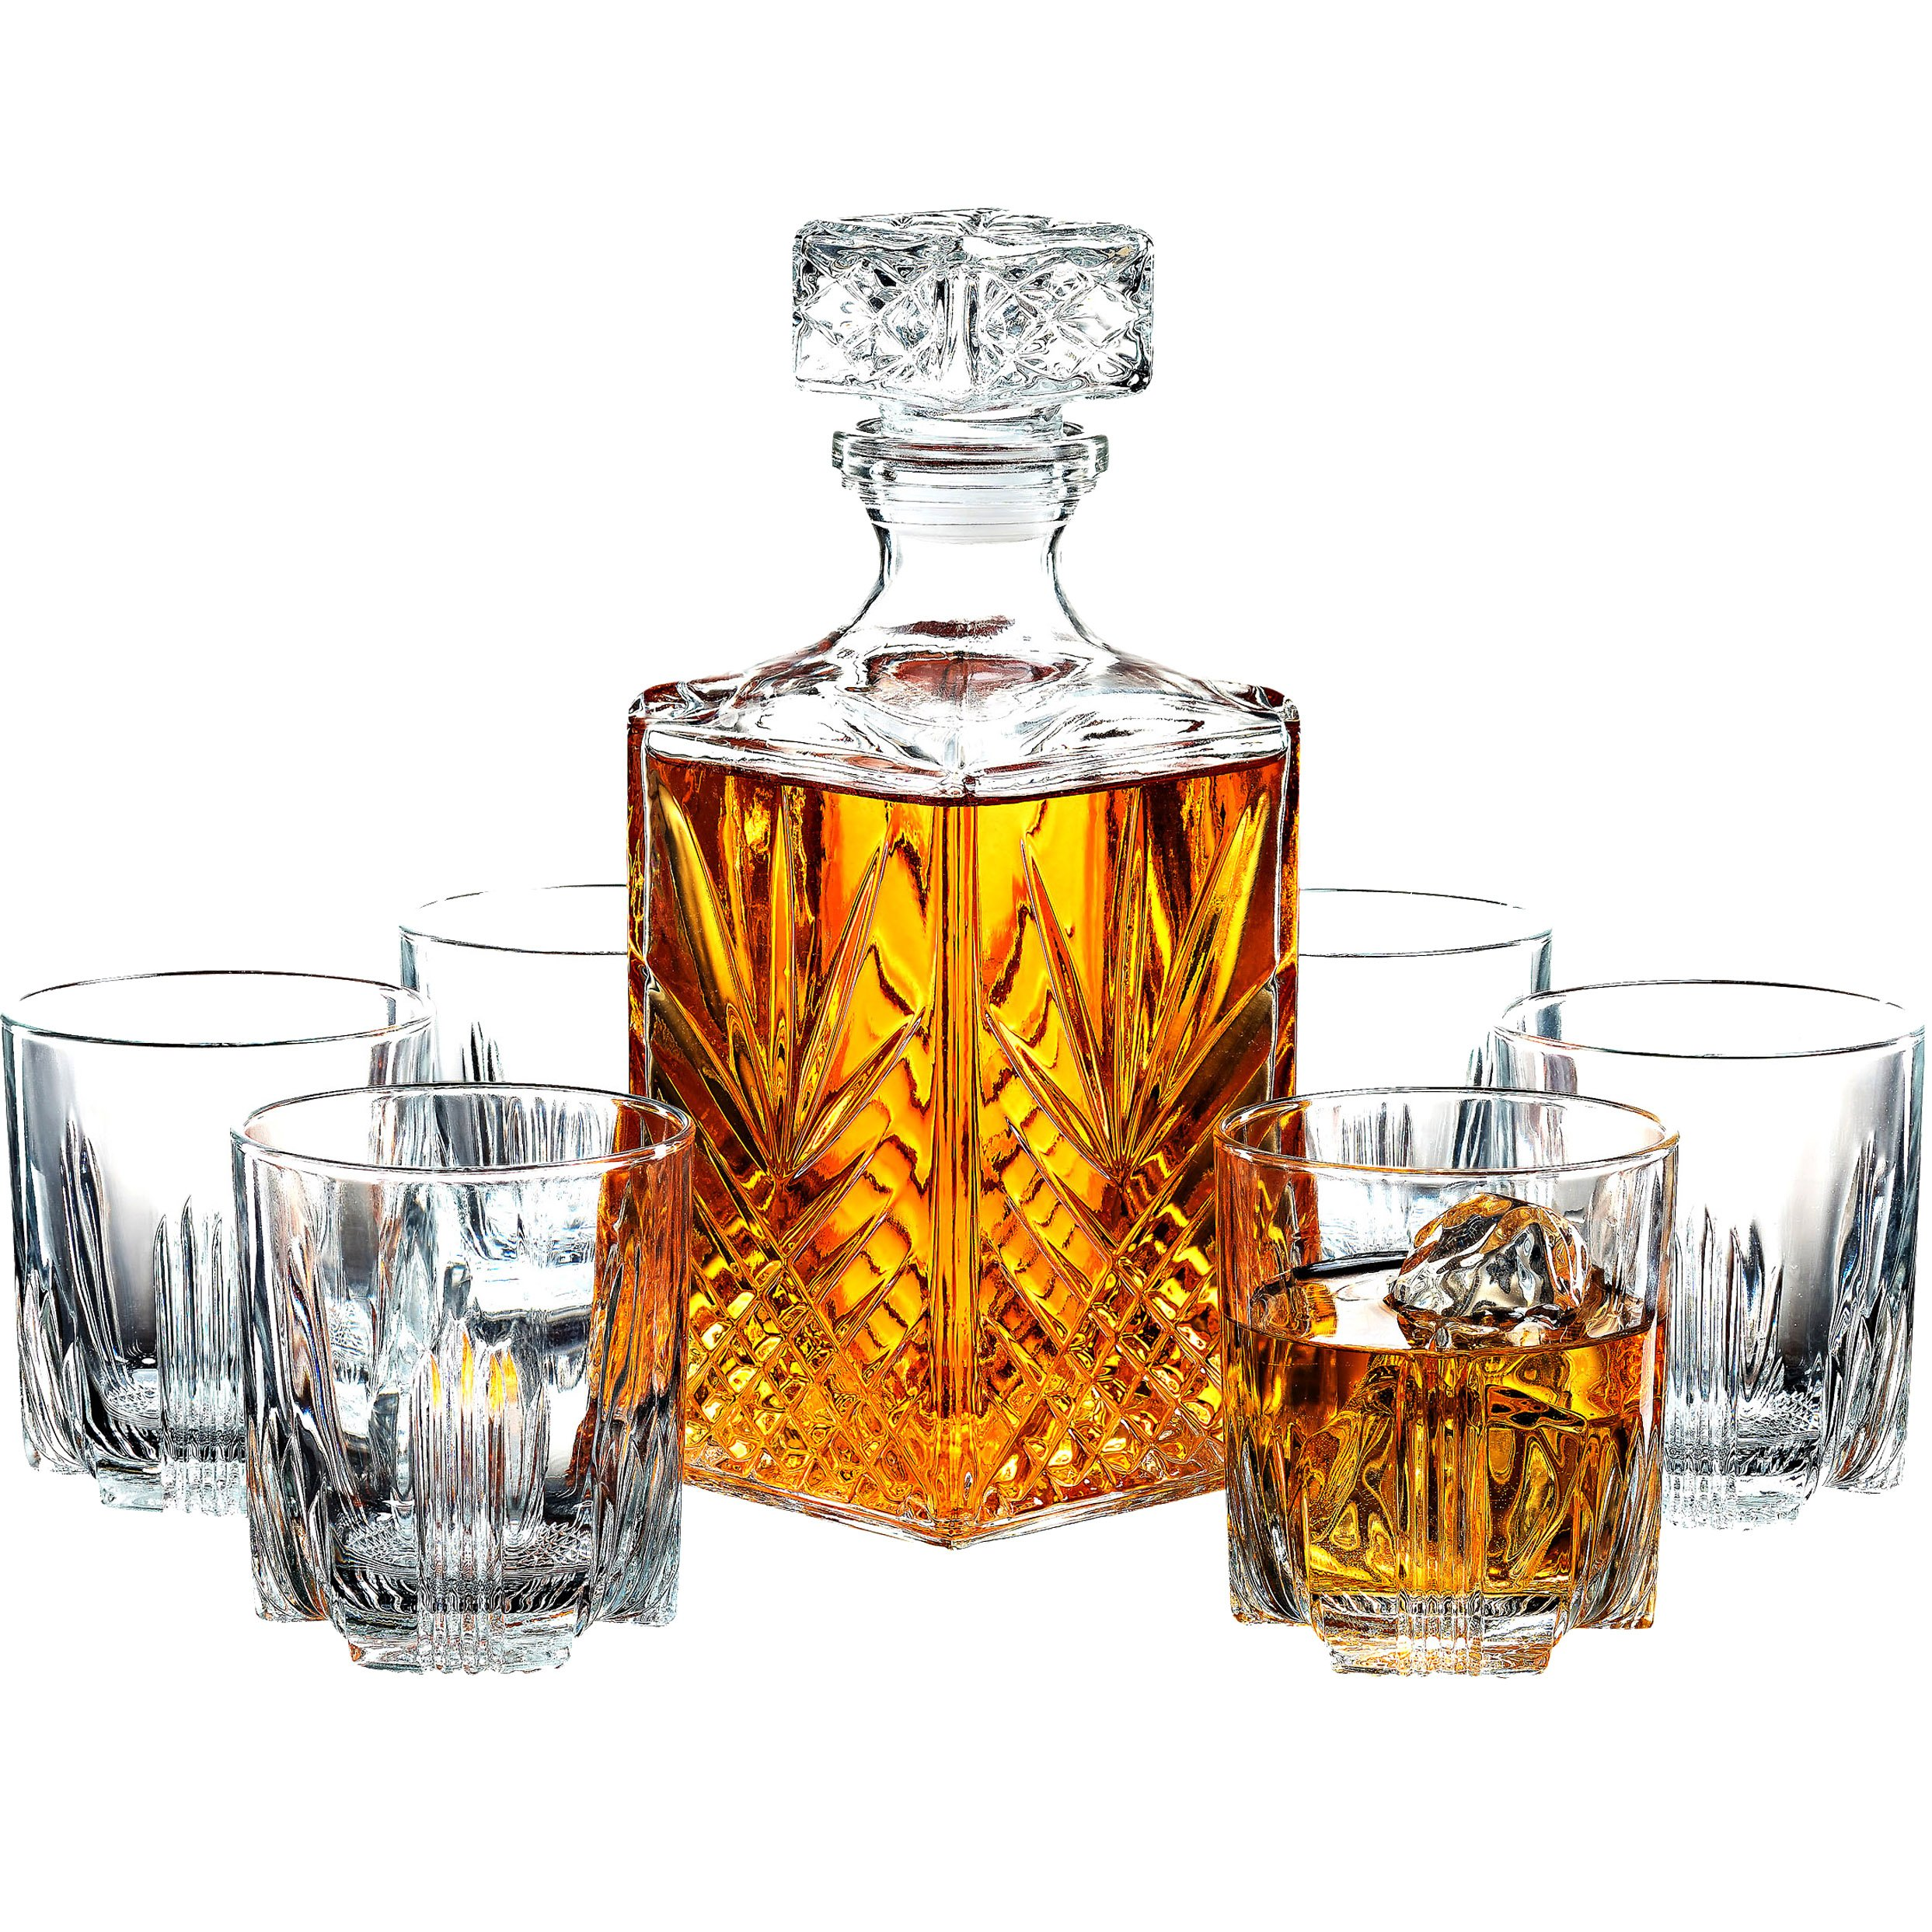 Paksh Novelty 7-Piece Italian Crafted Glass Decanter & Whisky Glasses Set, Elegant Whiskey Decanter with Ornate Stopper and 6 Exquisite Cocktail Glasses by Paksh Novelty